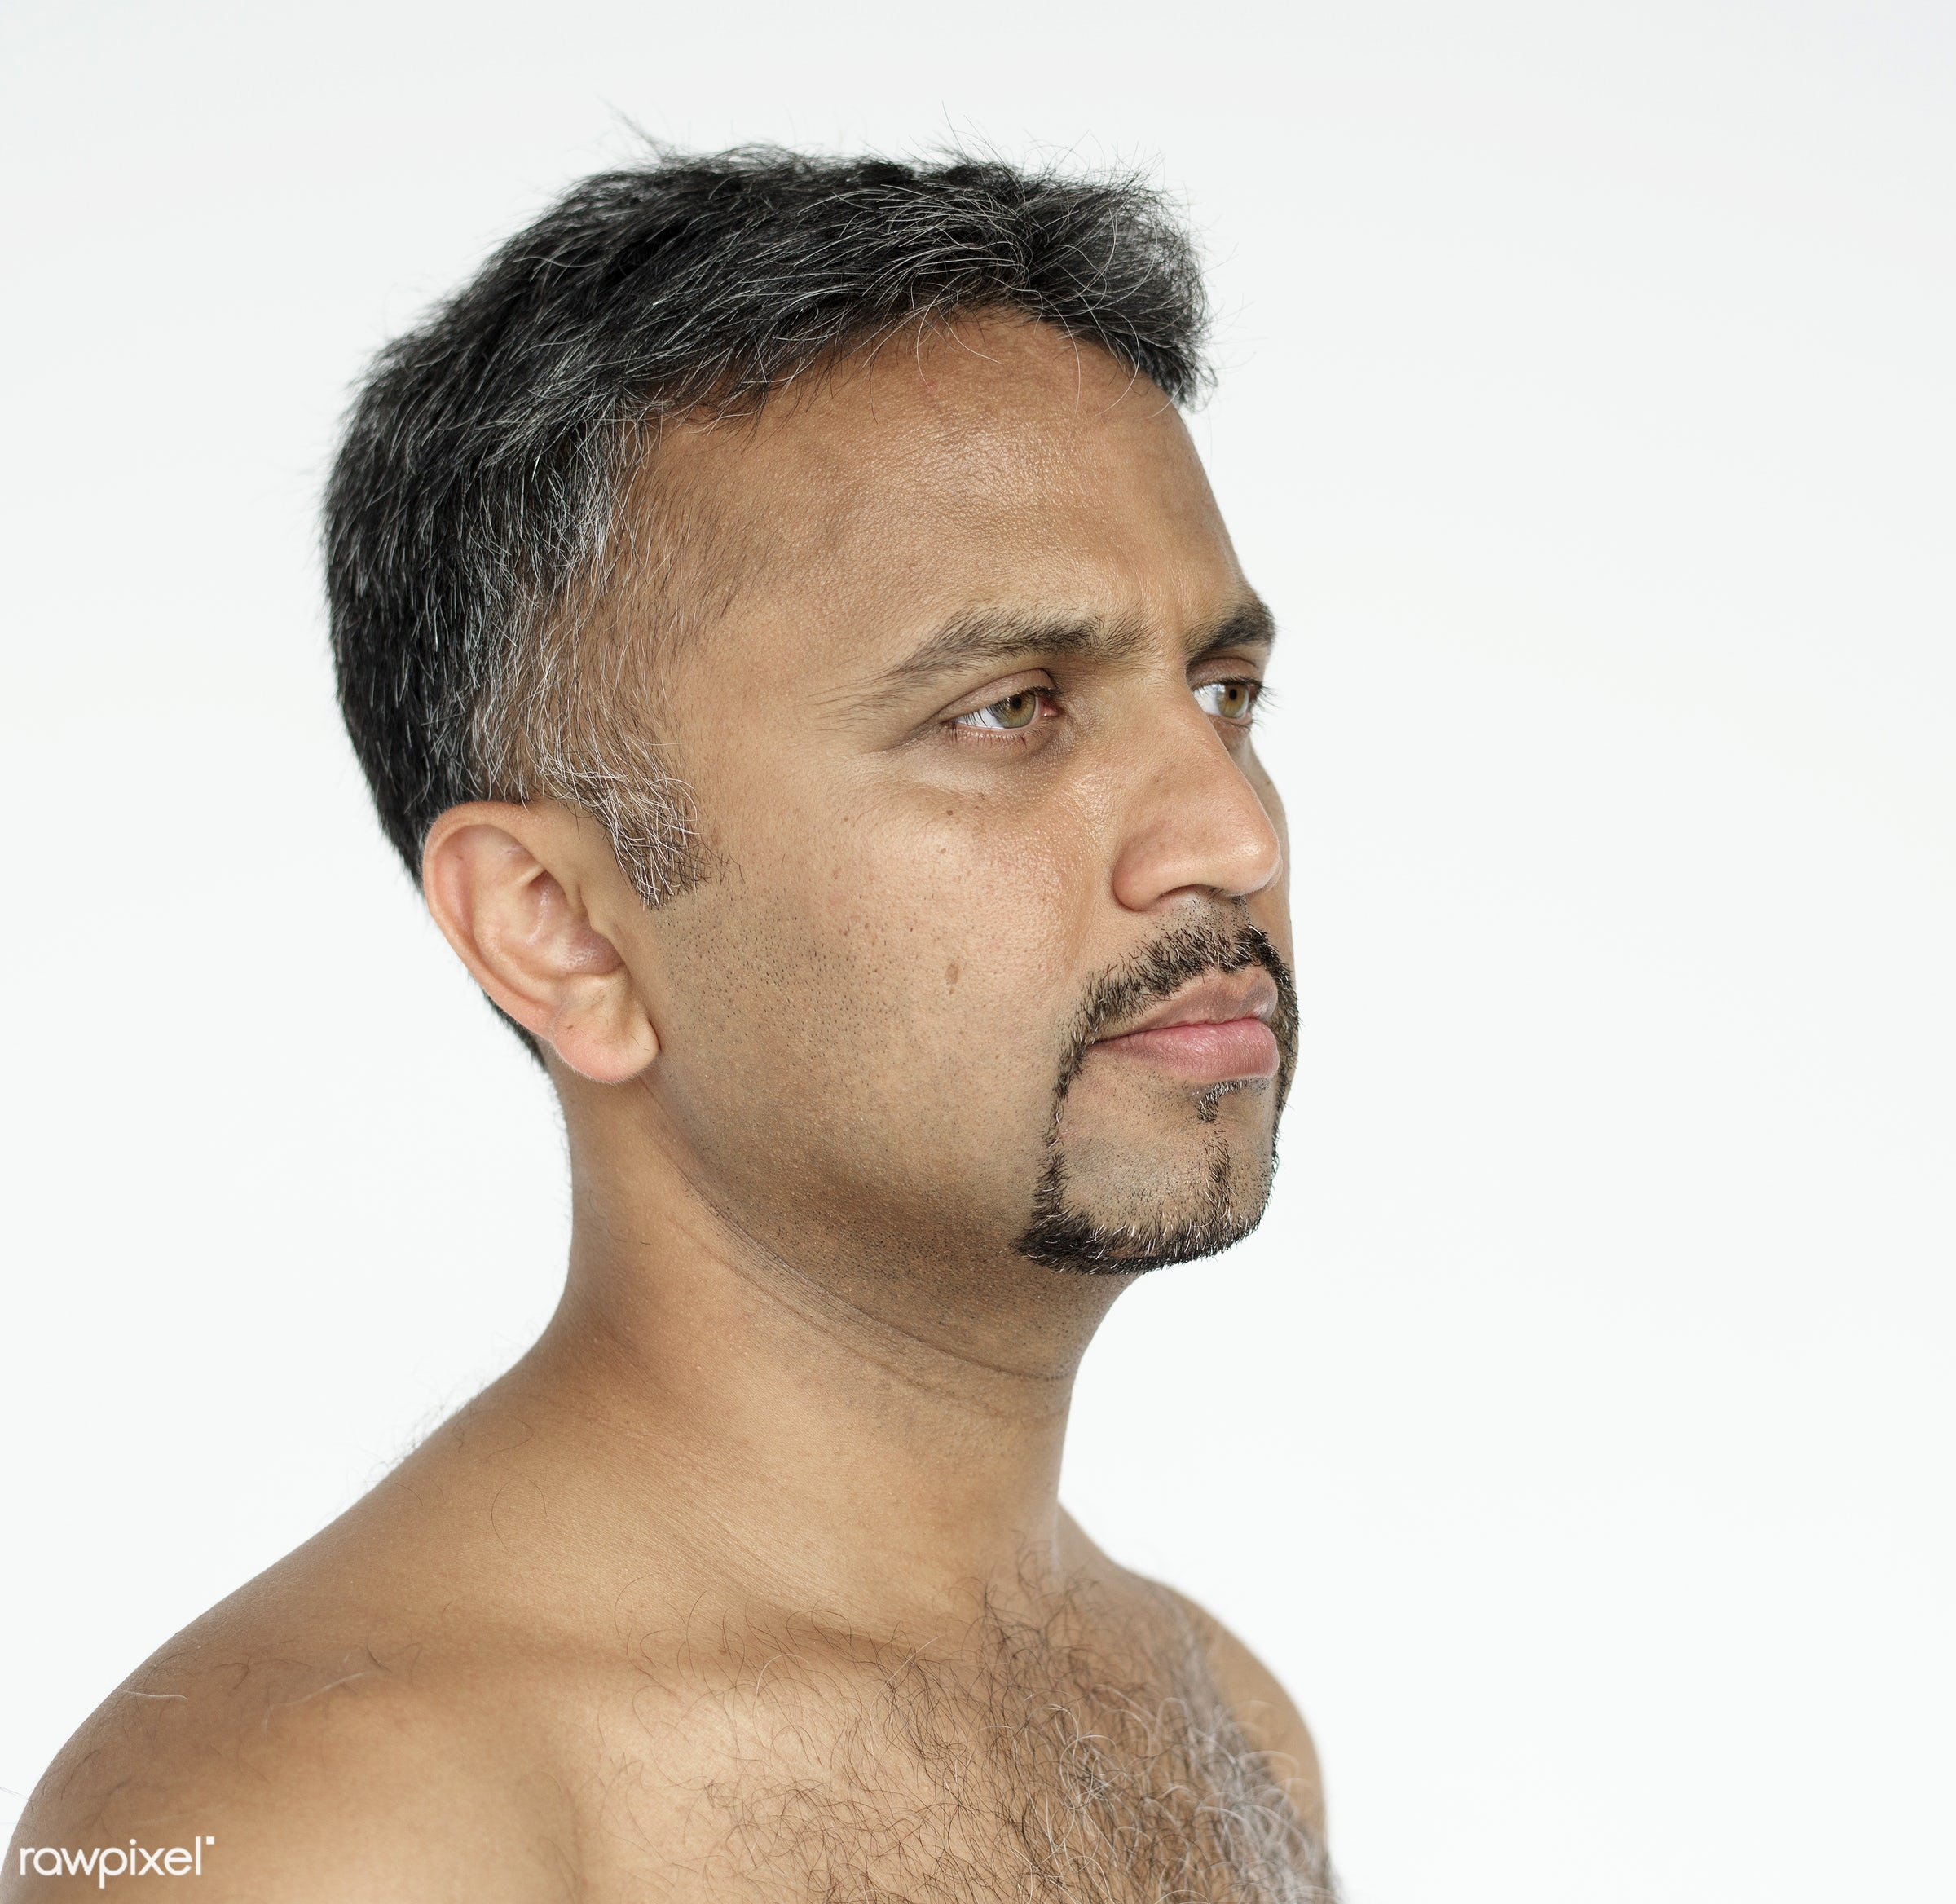 background, beard, chest, dude, emotion, expression, frown, guy, hair, indian ethnicity, isolated, lifestyle, male, man, one...